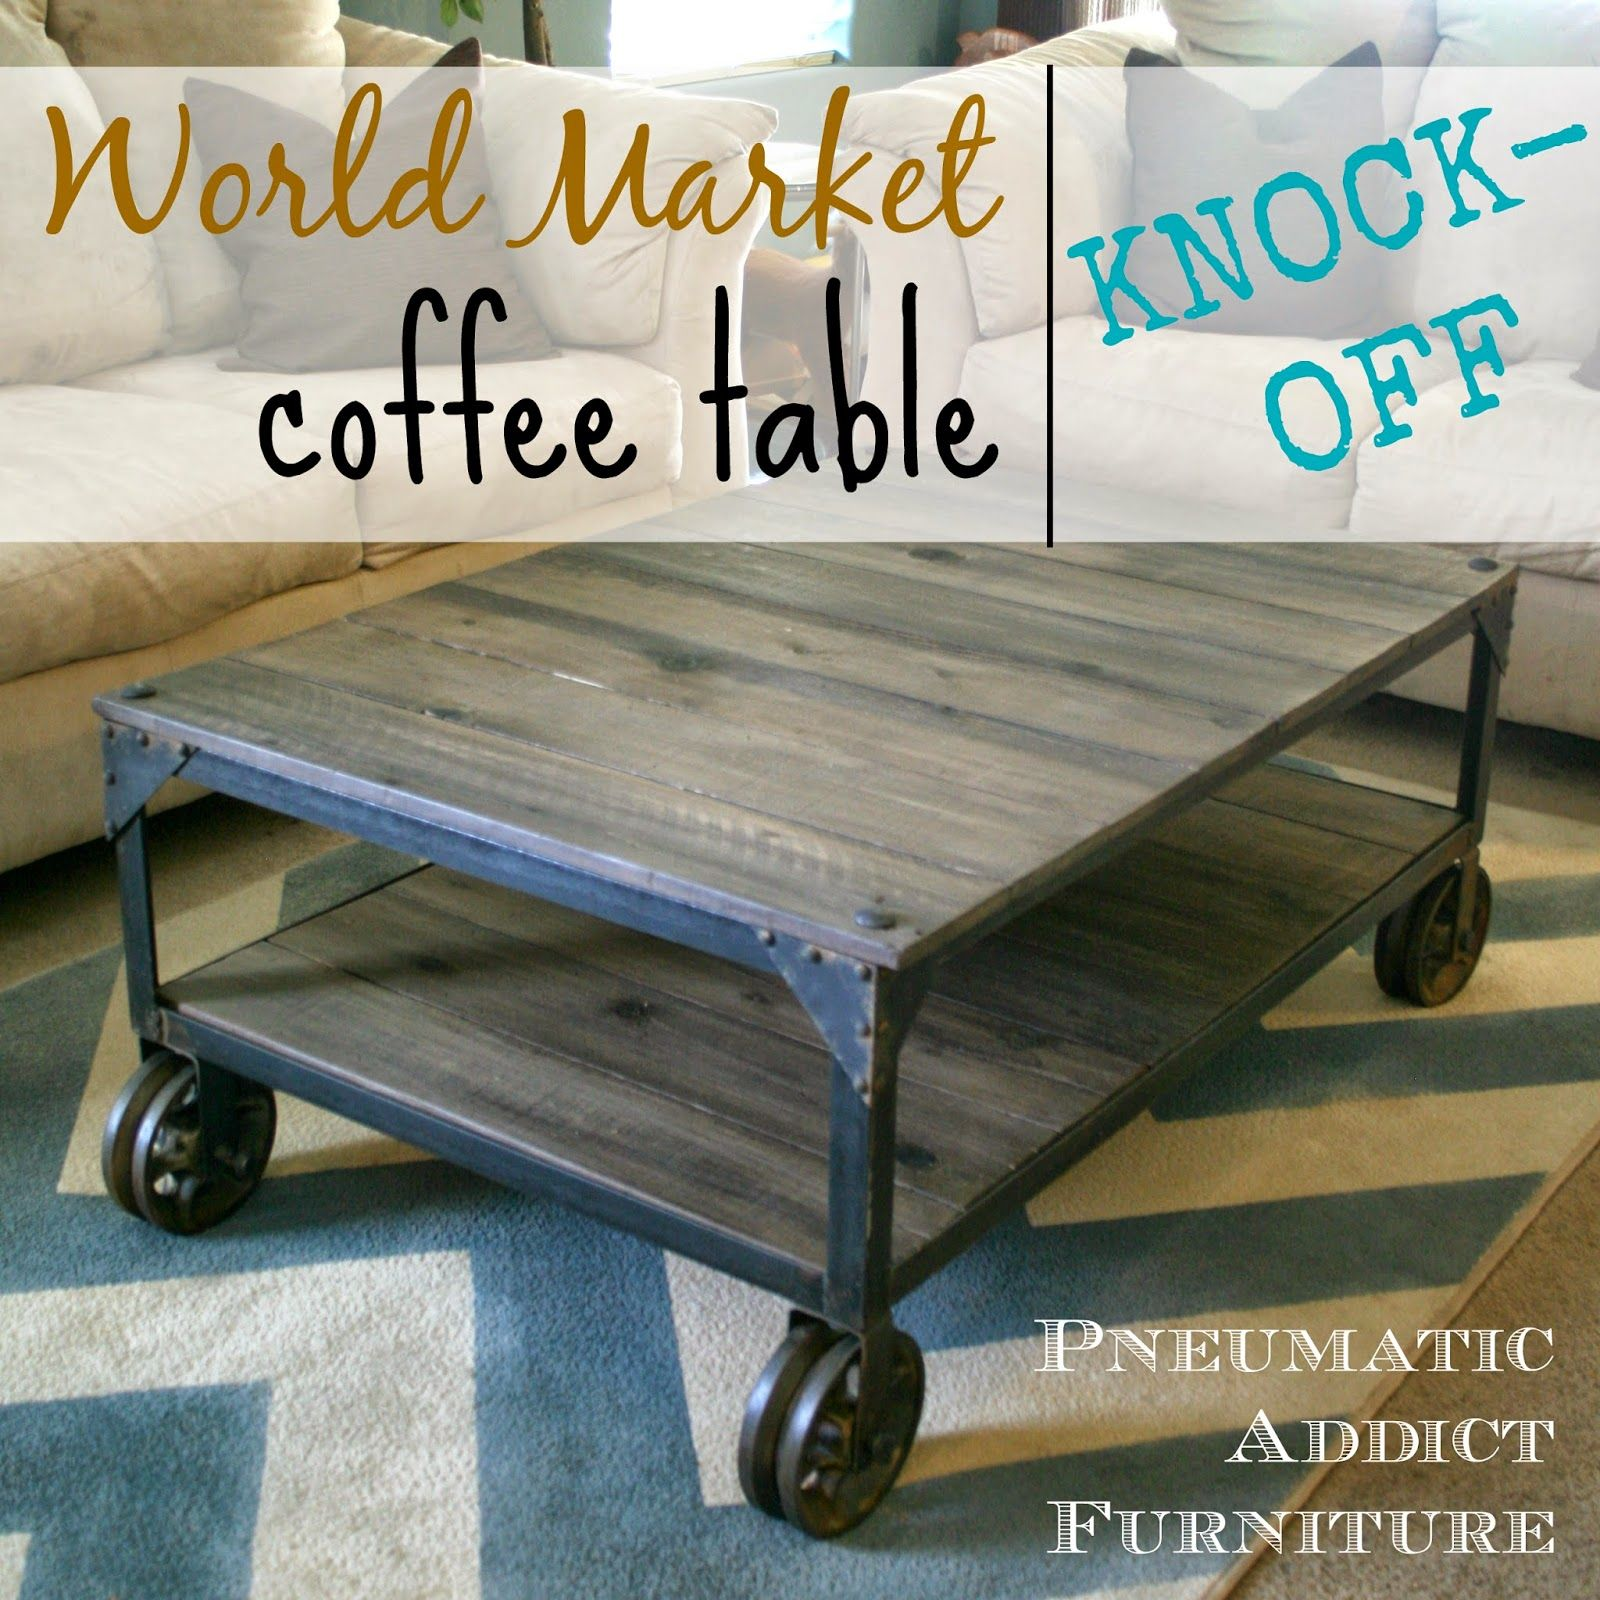 Pneumatic Addict Furniture World Market Aiden Coffee Table Knock Off She Welds And Lots Of Other Great Techniques Are Used On This